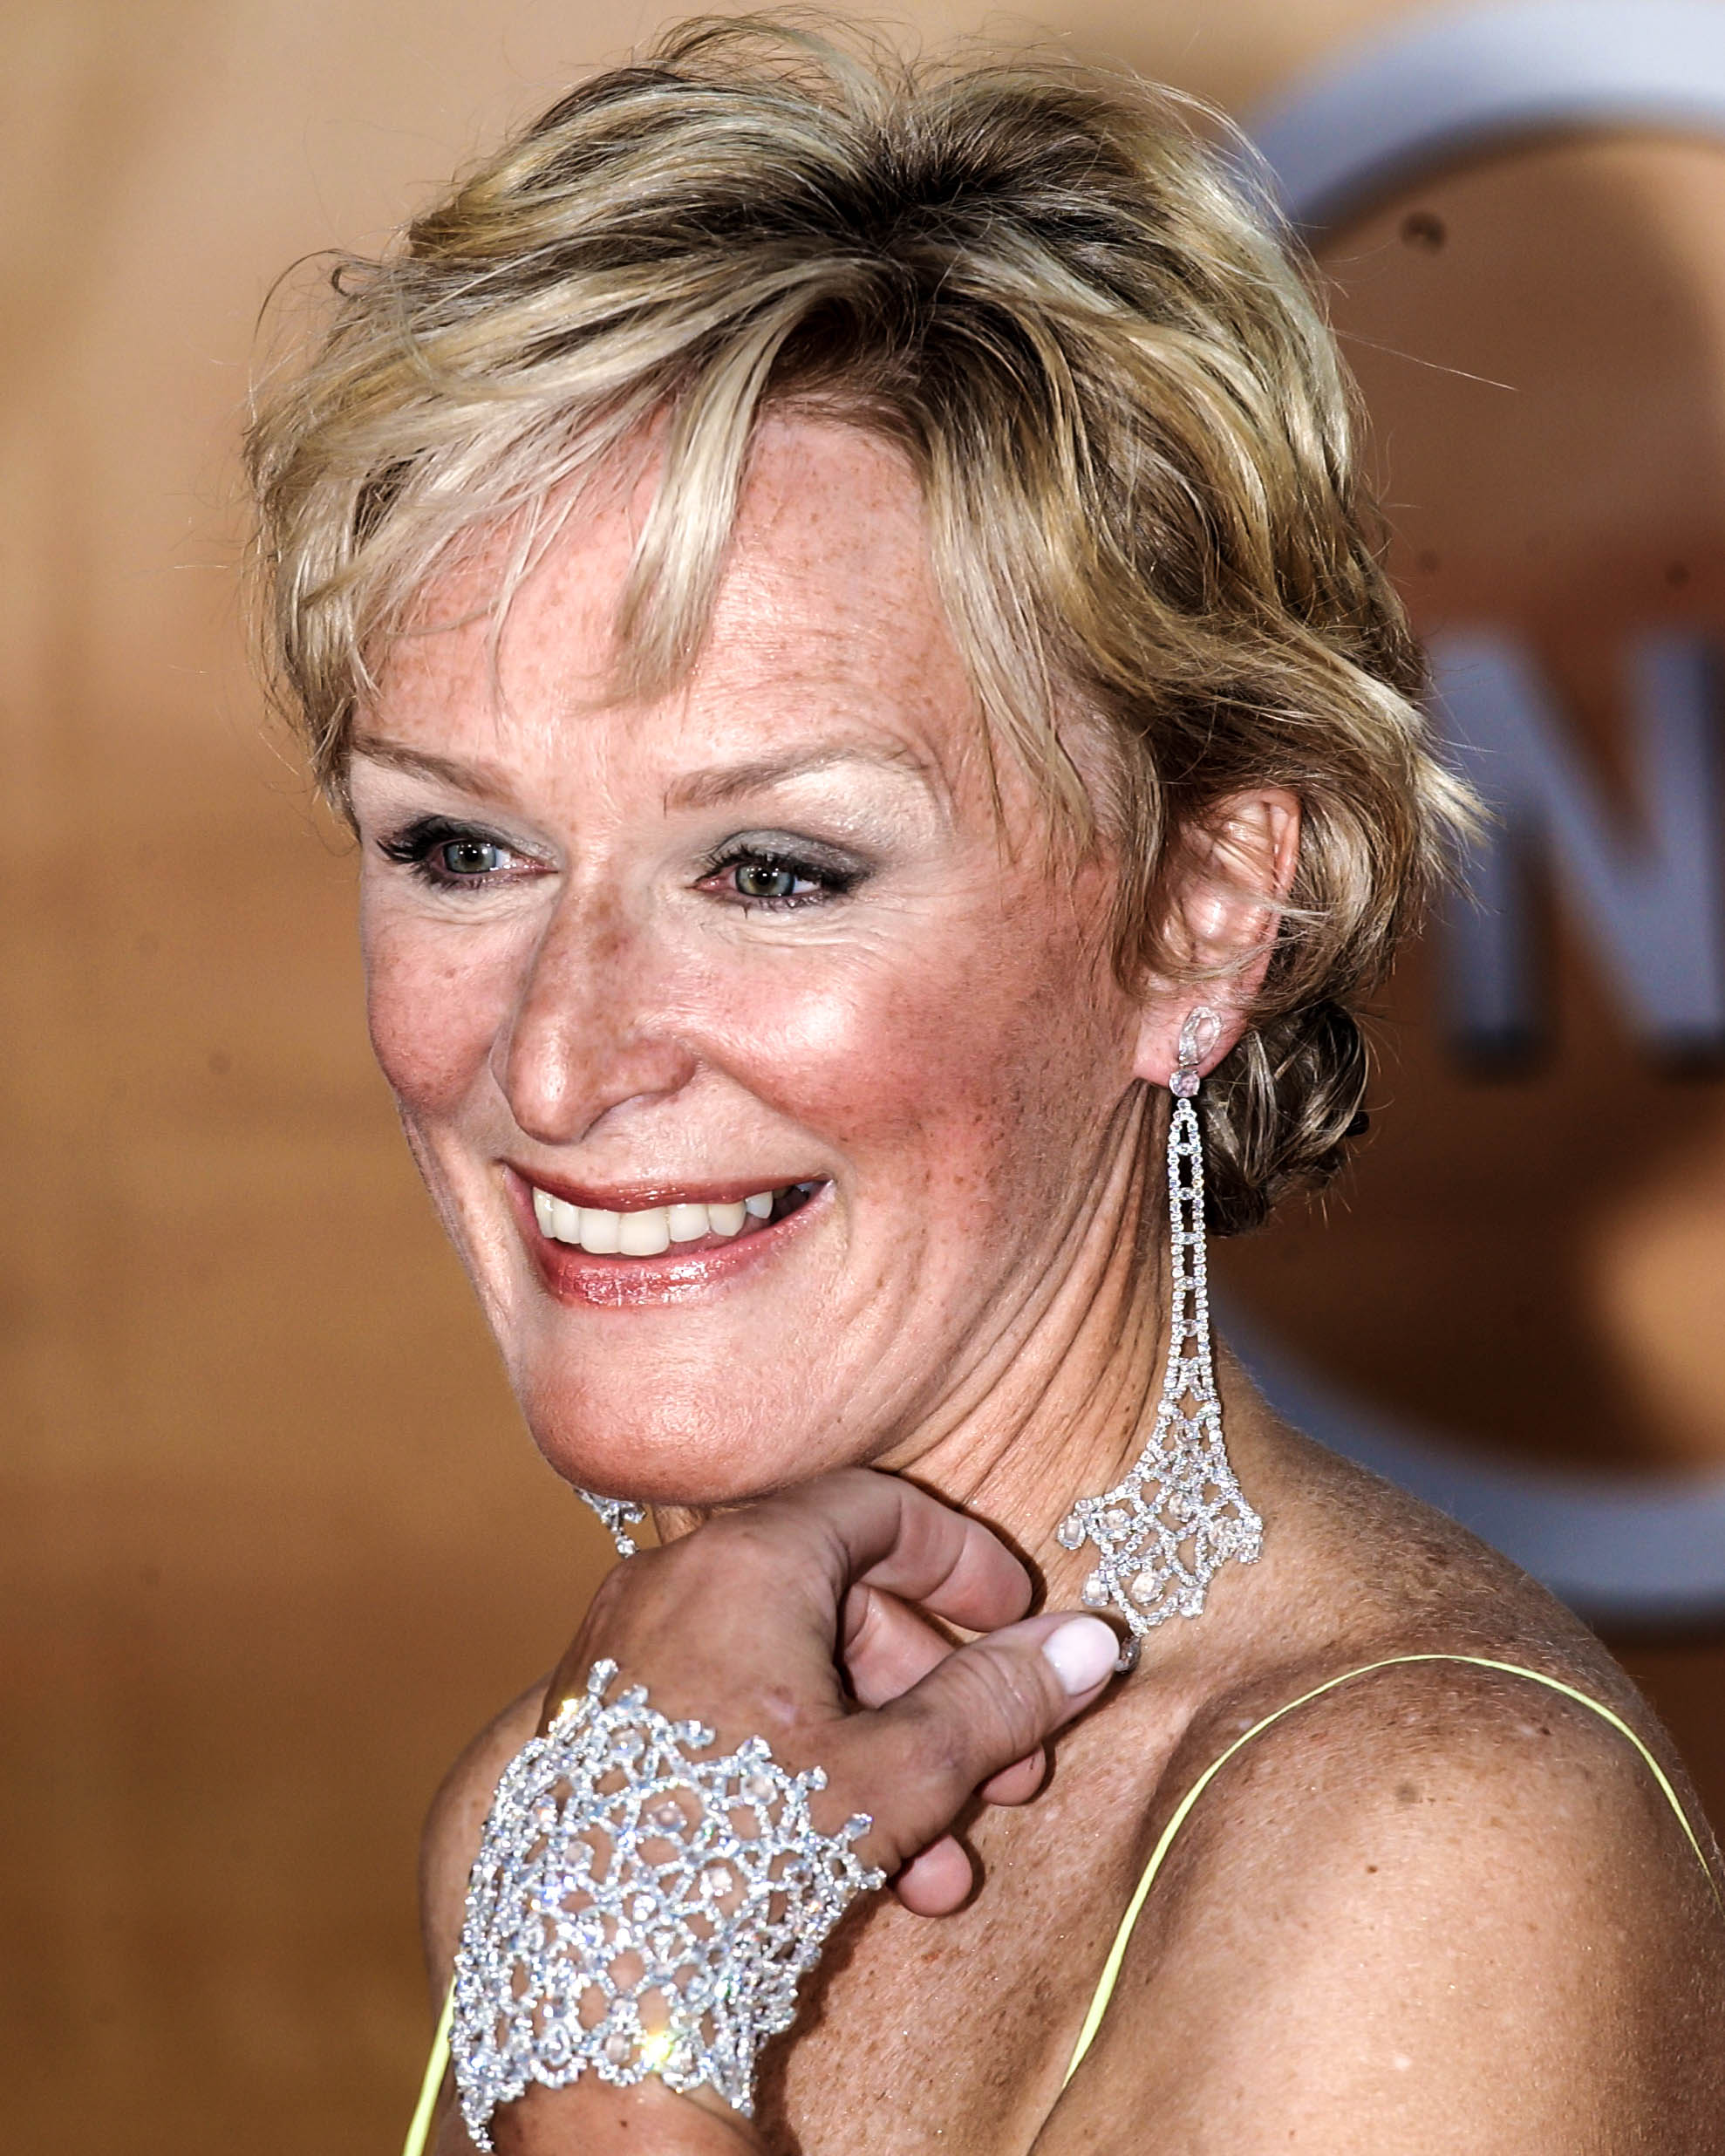 Glenn Close wearing Eiffel Tower Earrings and Pompadour Bracelet at 2005 SAG Awards.